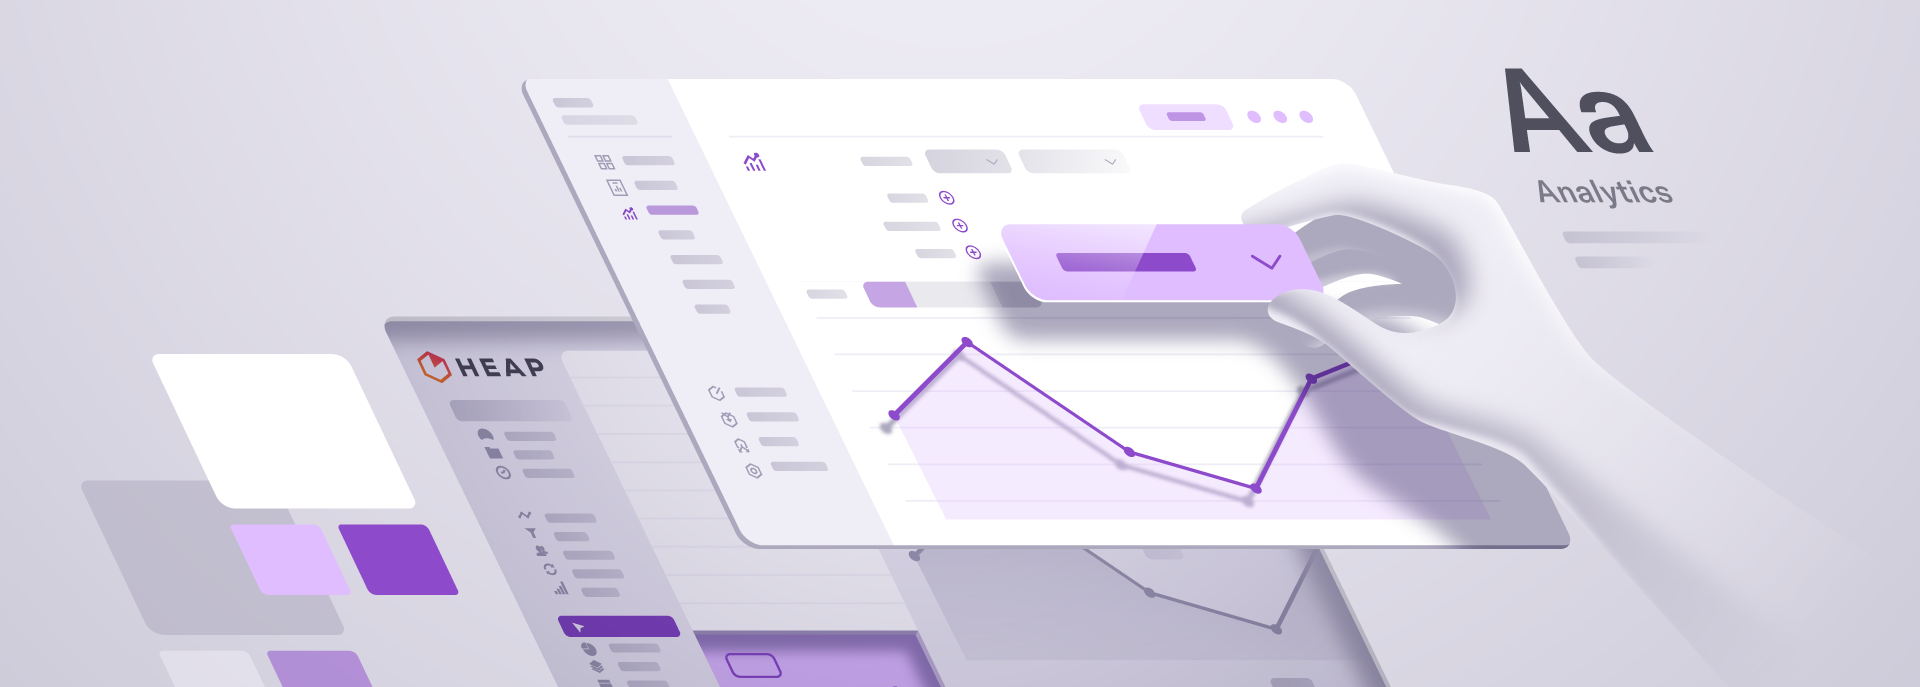 Case Study: How We Redesigned Our App's UI in Only Three Months